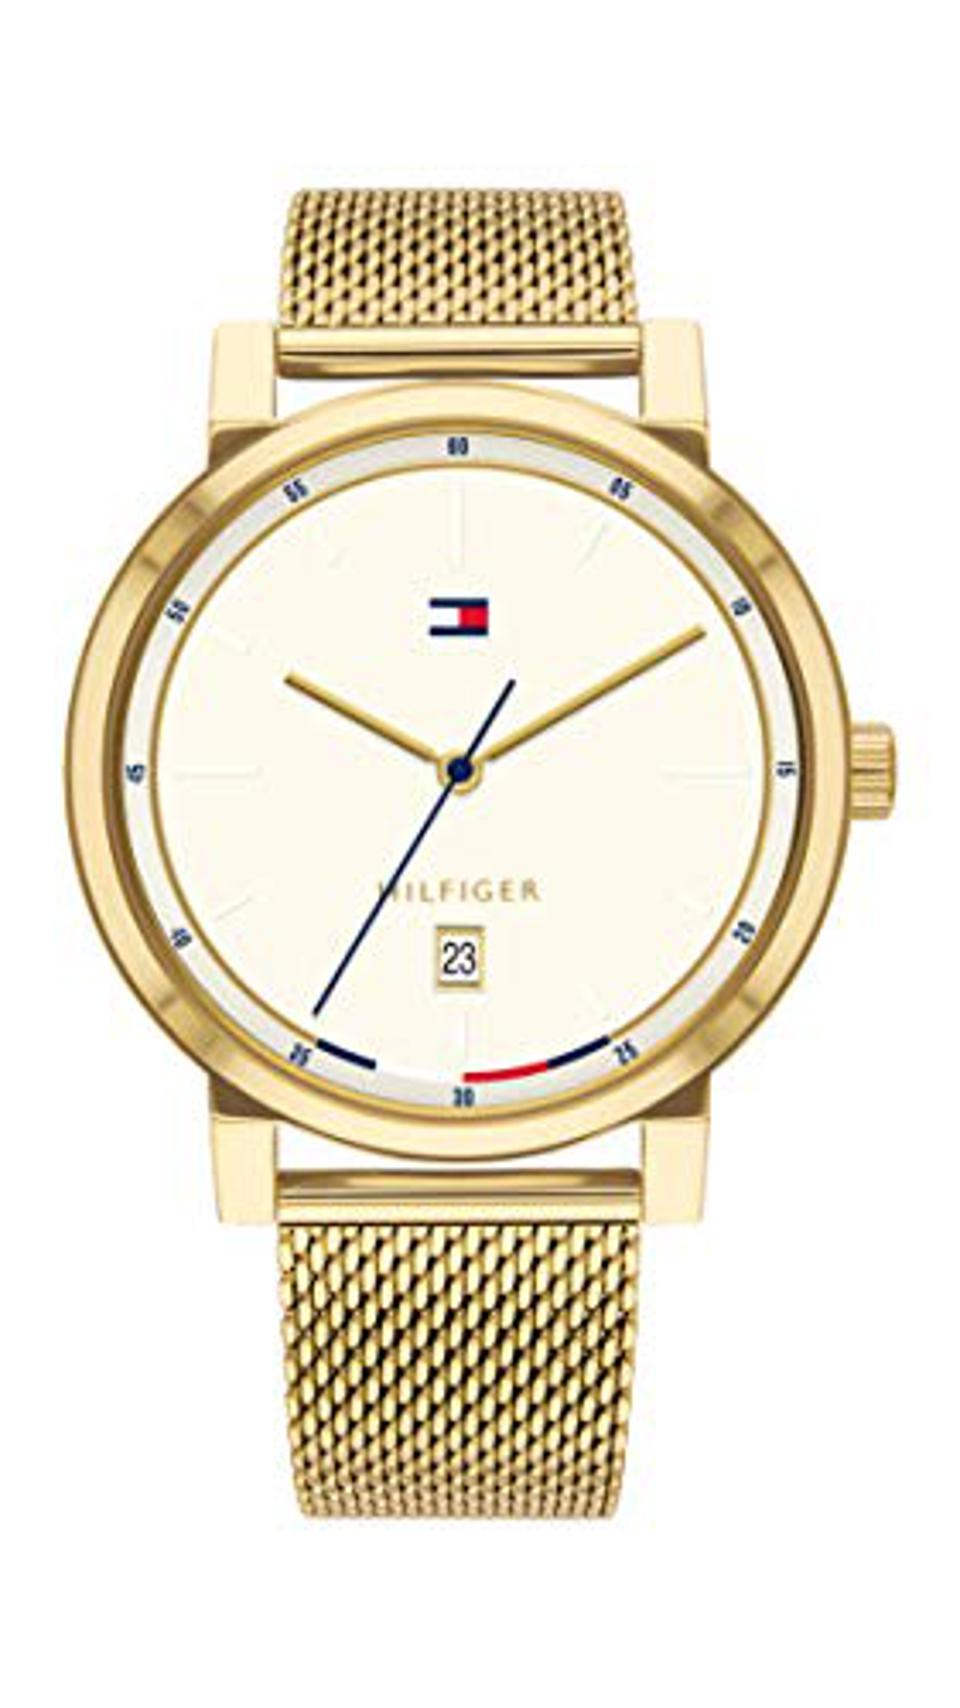 Tommy Hilfiger Men's Quartz Watch with Gold Tone Stainless Steel Strap, 20 (Model: 1791733)